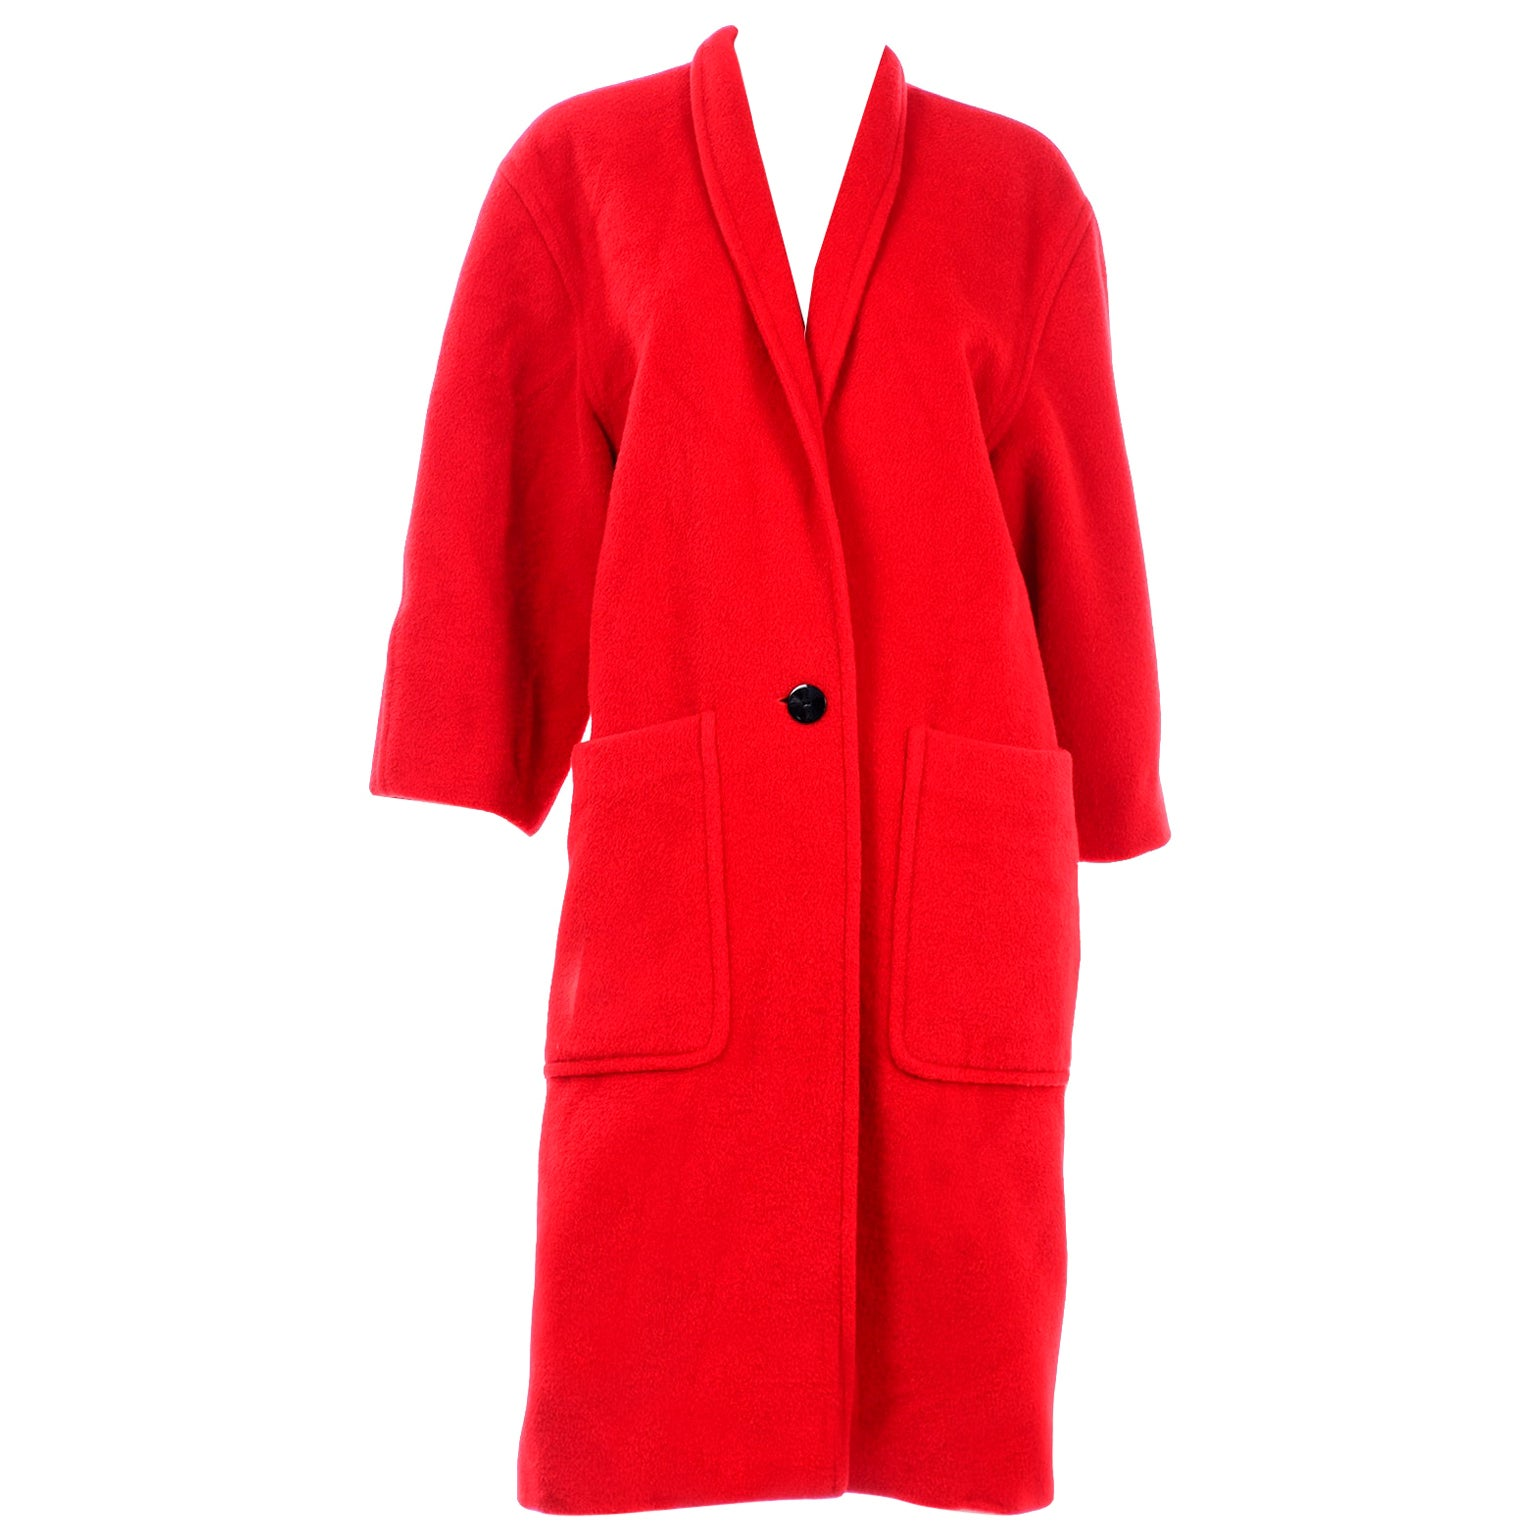 Vintage Escada Margaretha Ley Red Mohair Alpaca Wool Coat With Pockets